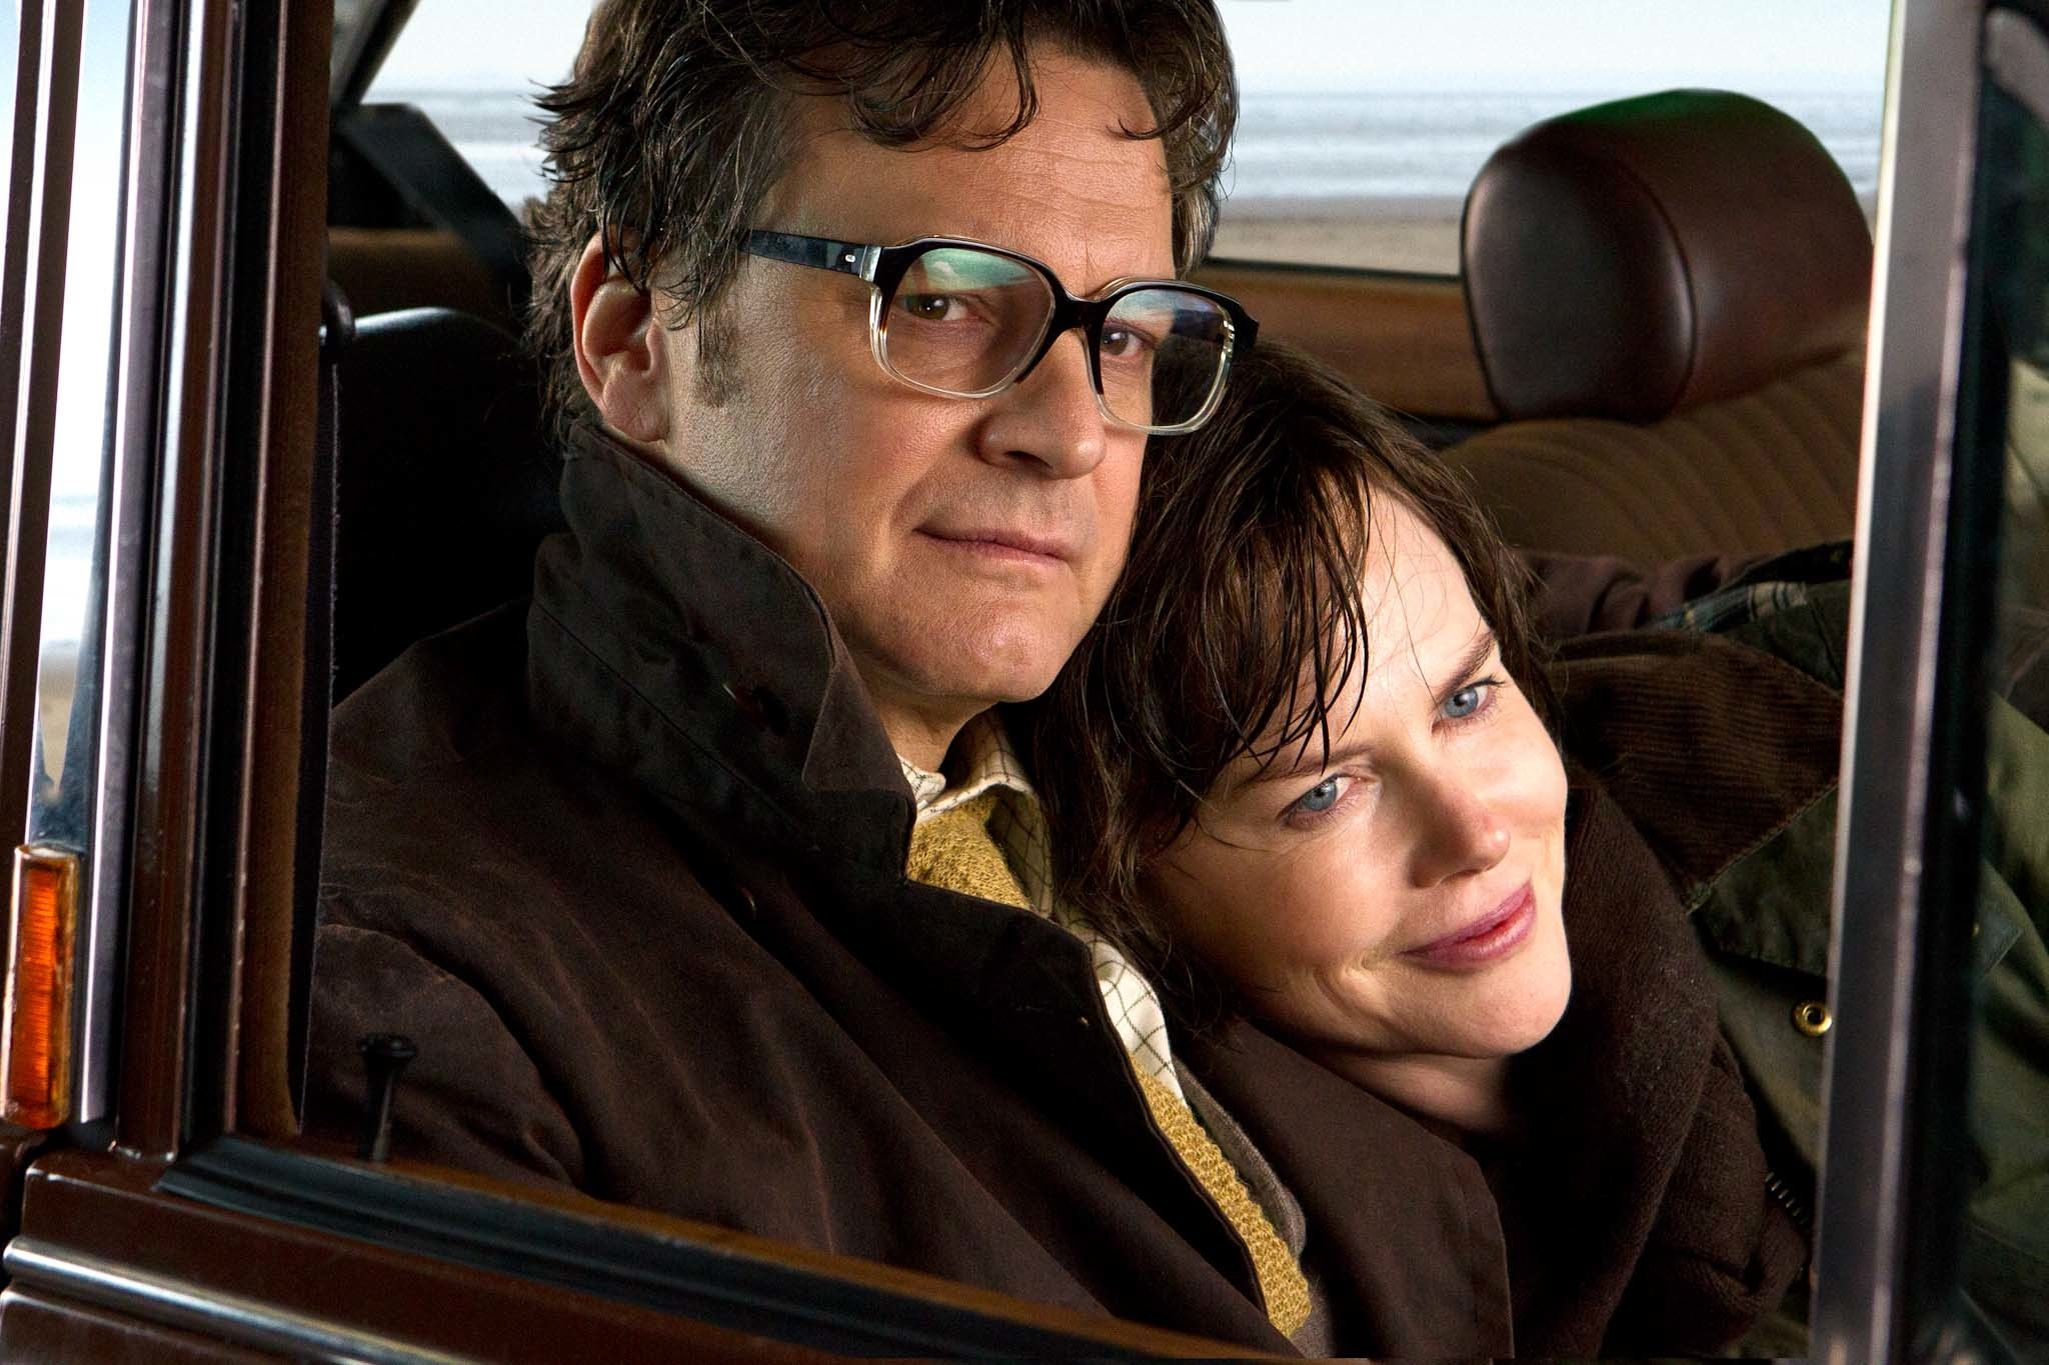 FILM & LISTINGS: The Railway Man